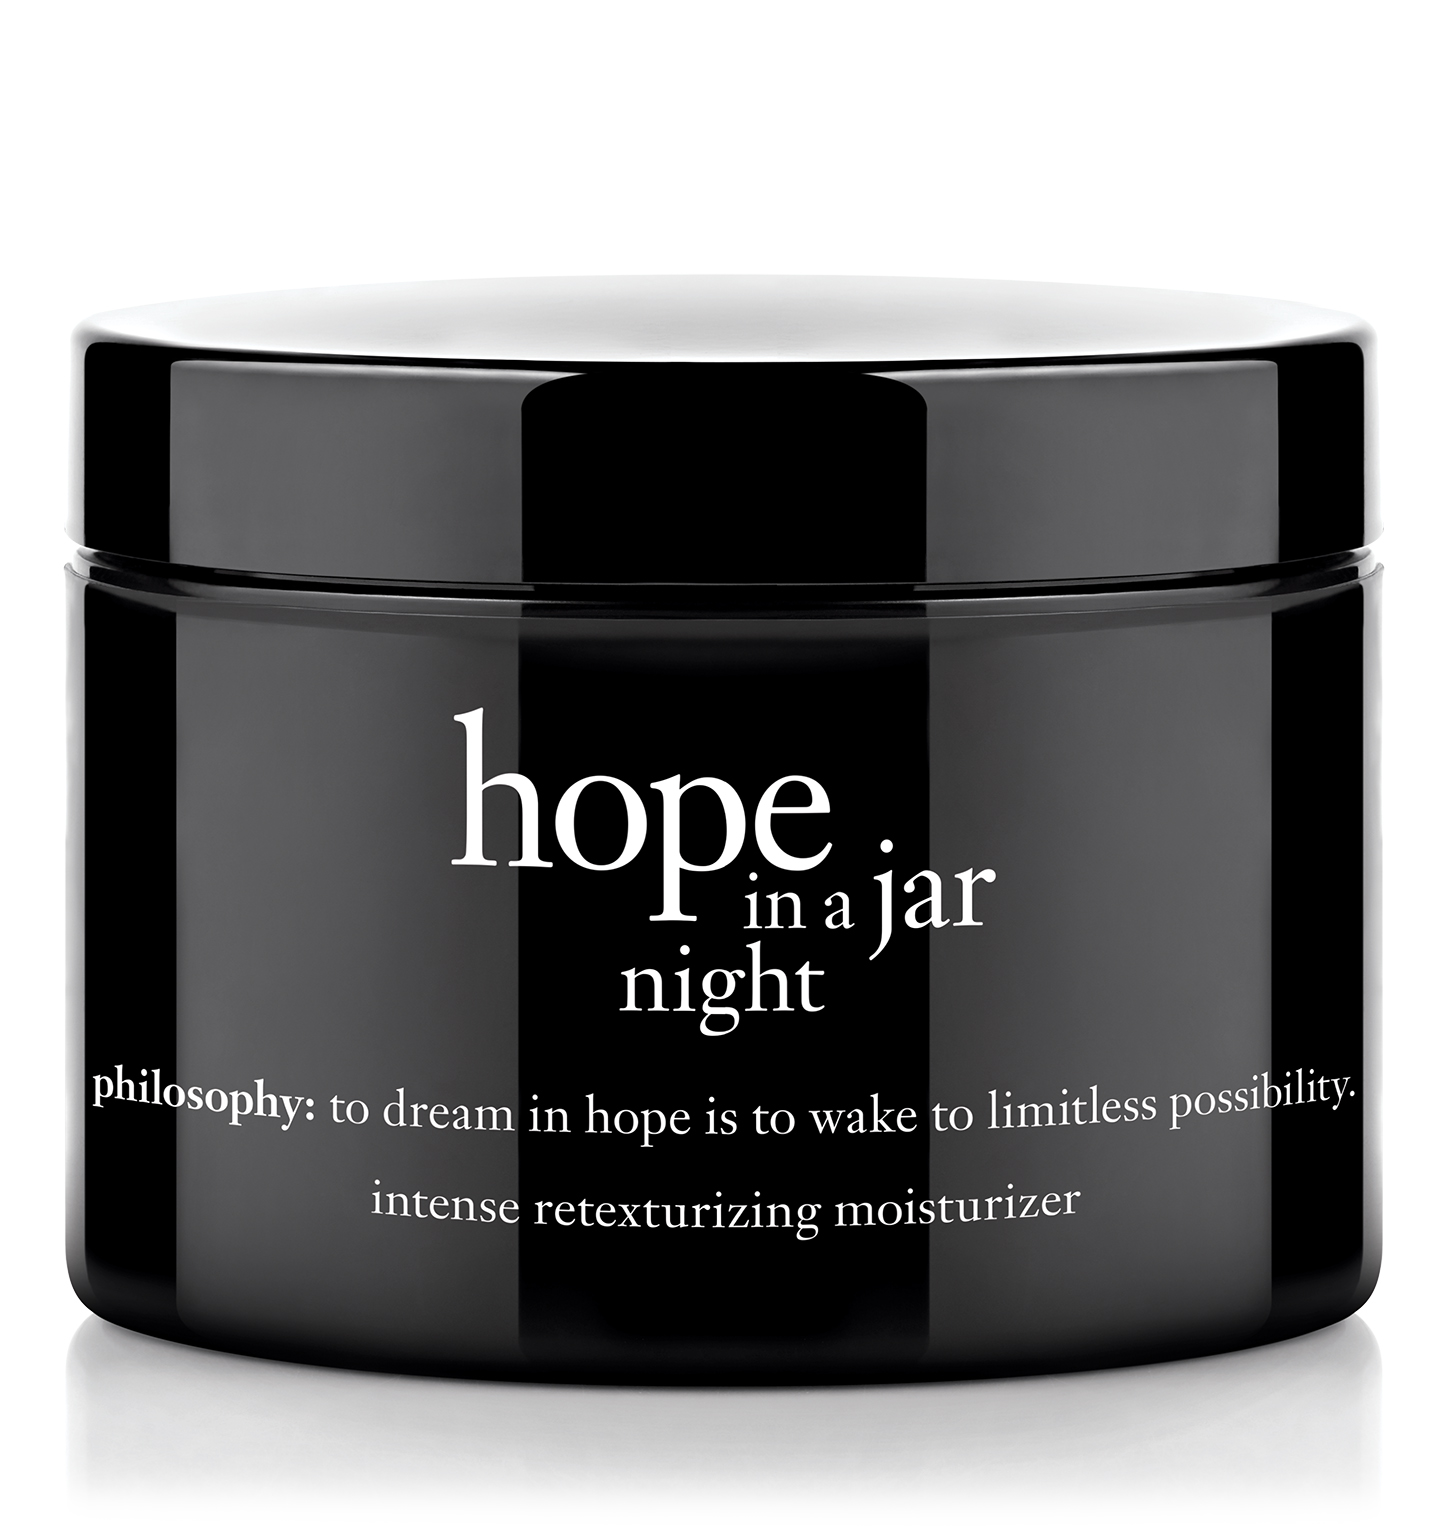 philosophy, hope in a jar night